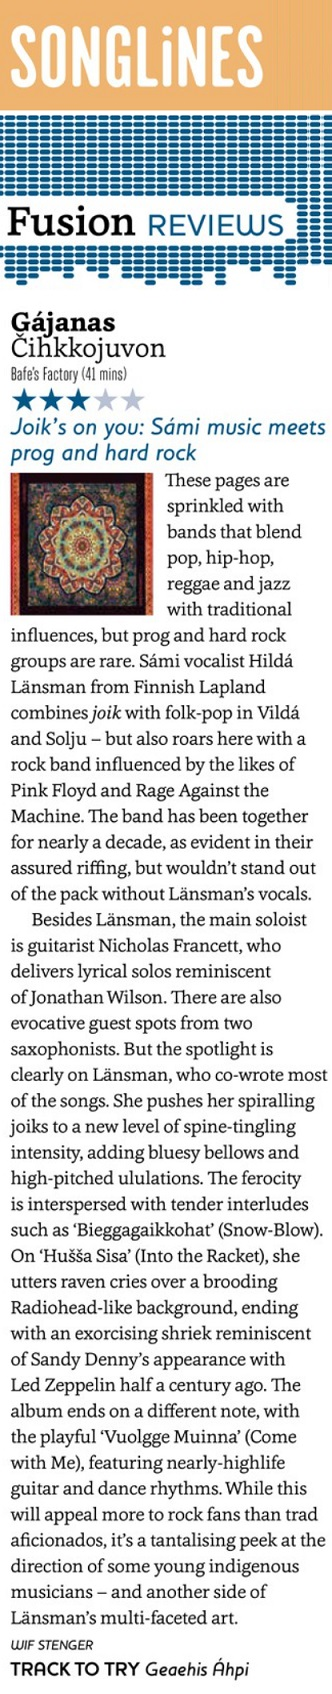 Songlines (UK), May 2021